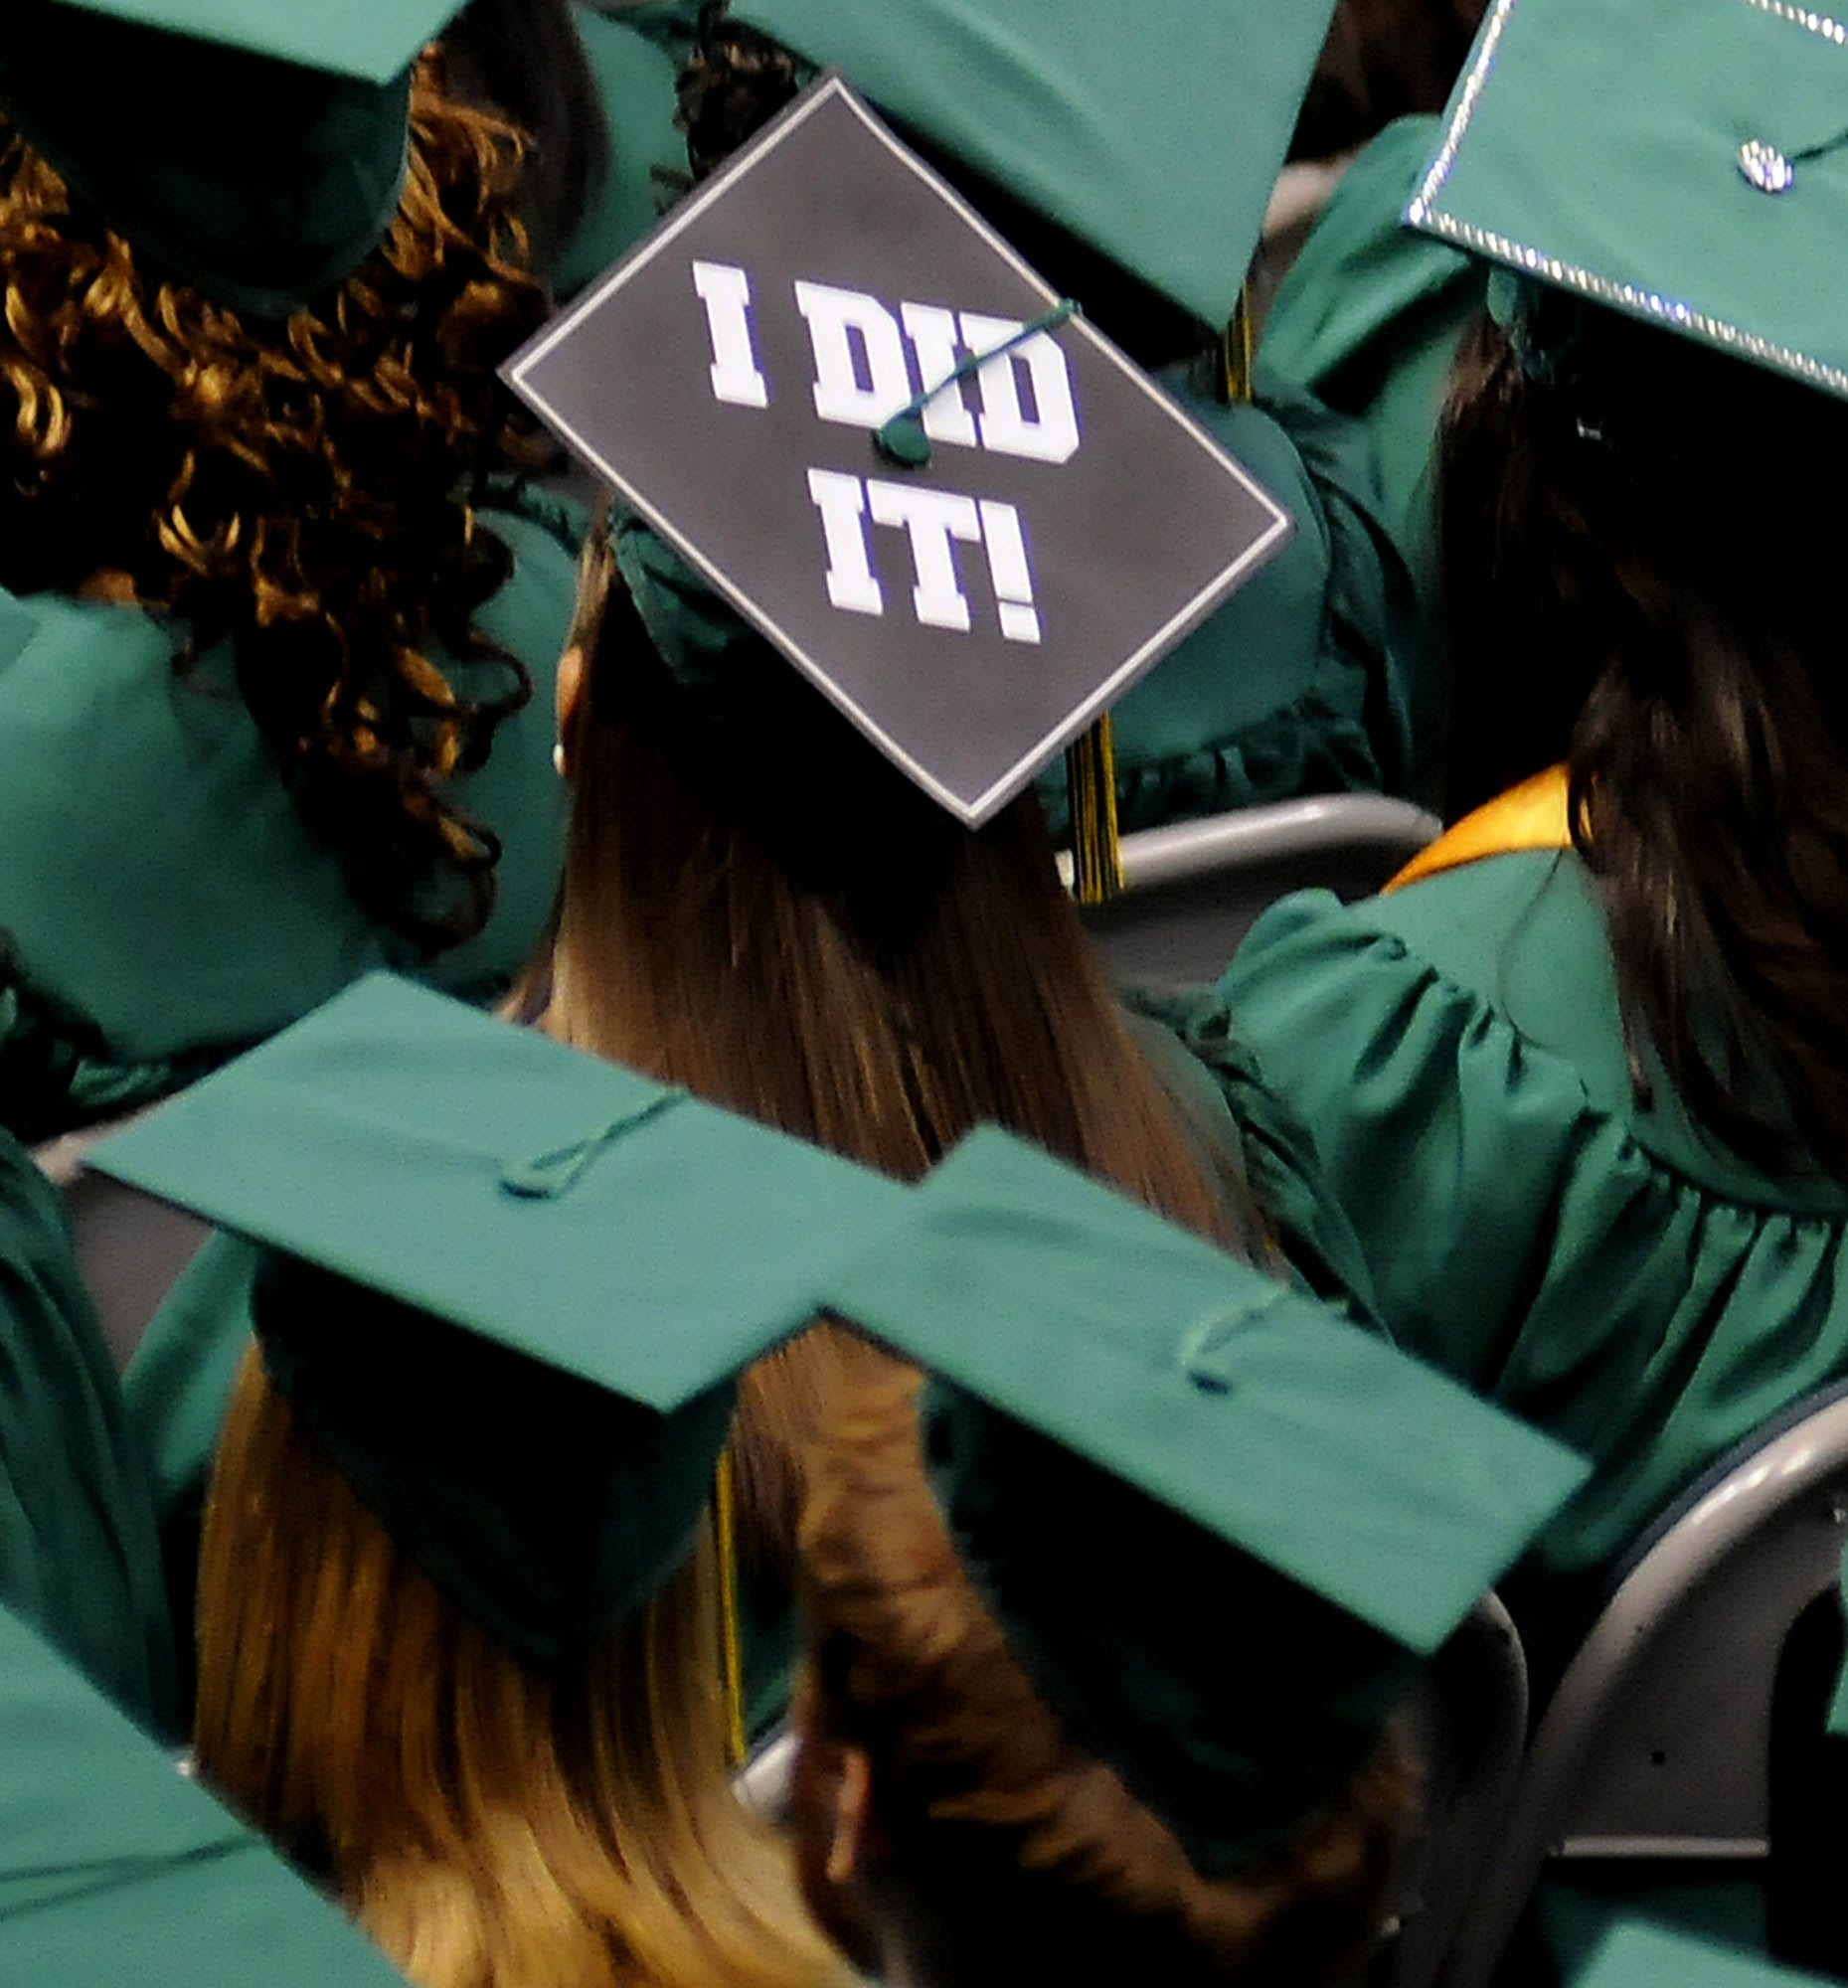 A graduate sends a message on her mortar board cap as the University of Alabama at Birmingham holds May 2012 commencement exercises for their graduates.